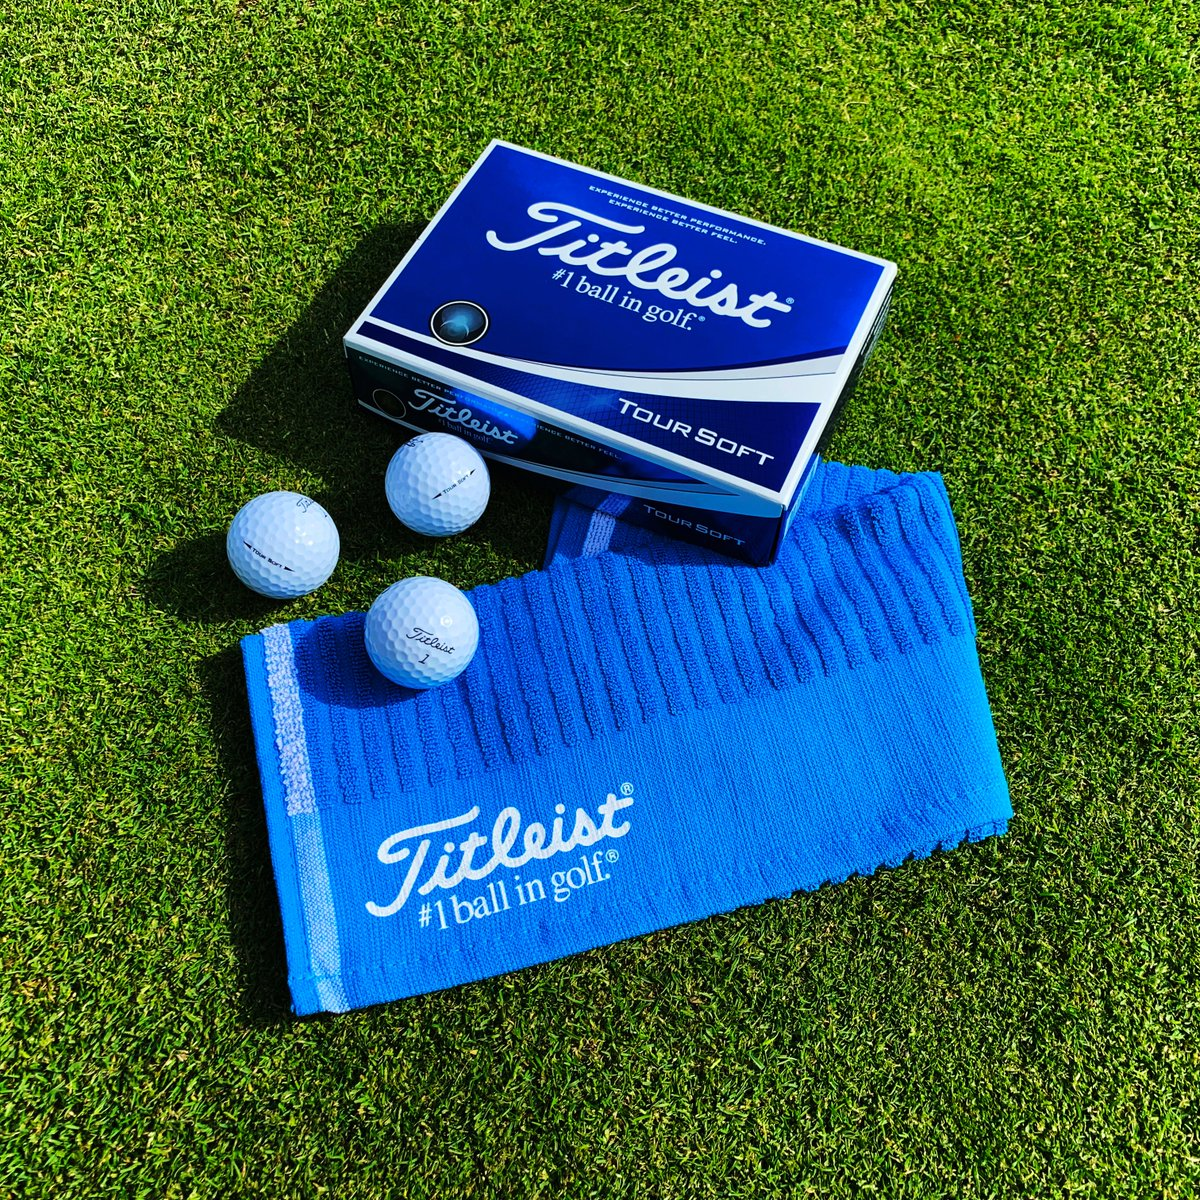 FREE @Titleist Tour Soft Towel (RRP. £19.99) with every dozen Tour Soft Golf Balls purchased. While stocks last! Available in white or yellow - Only £27.99! Shop: snaintongolf.co.uk/section/1249/1… @TitleistEurope #titleist #teamtitleist #titleistgolfballs #golfballs #golf #snaintongolf